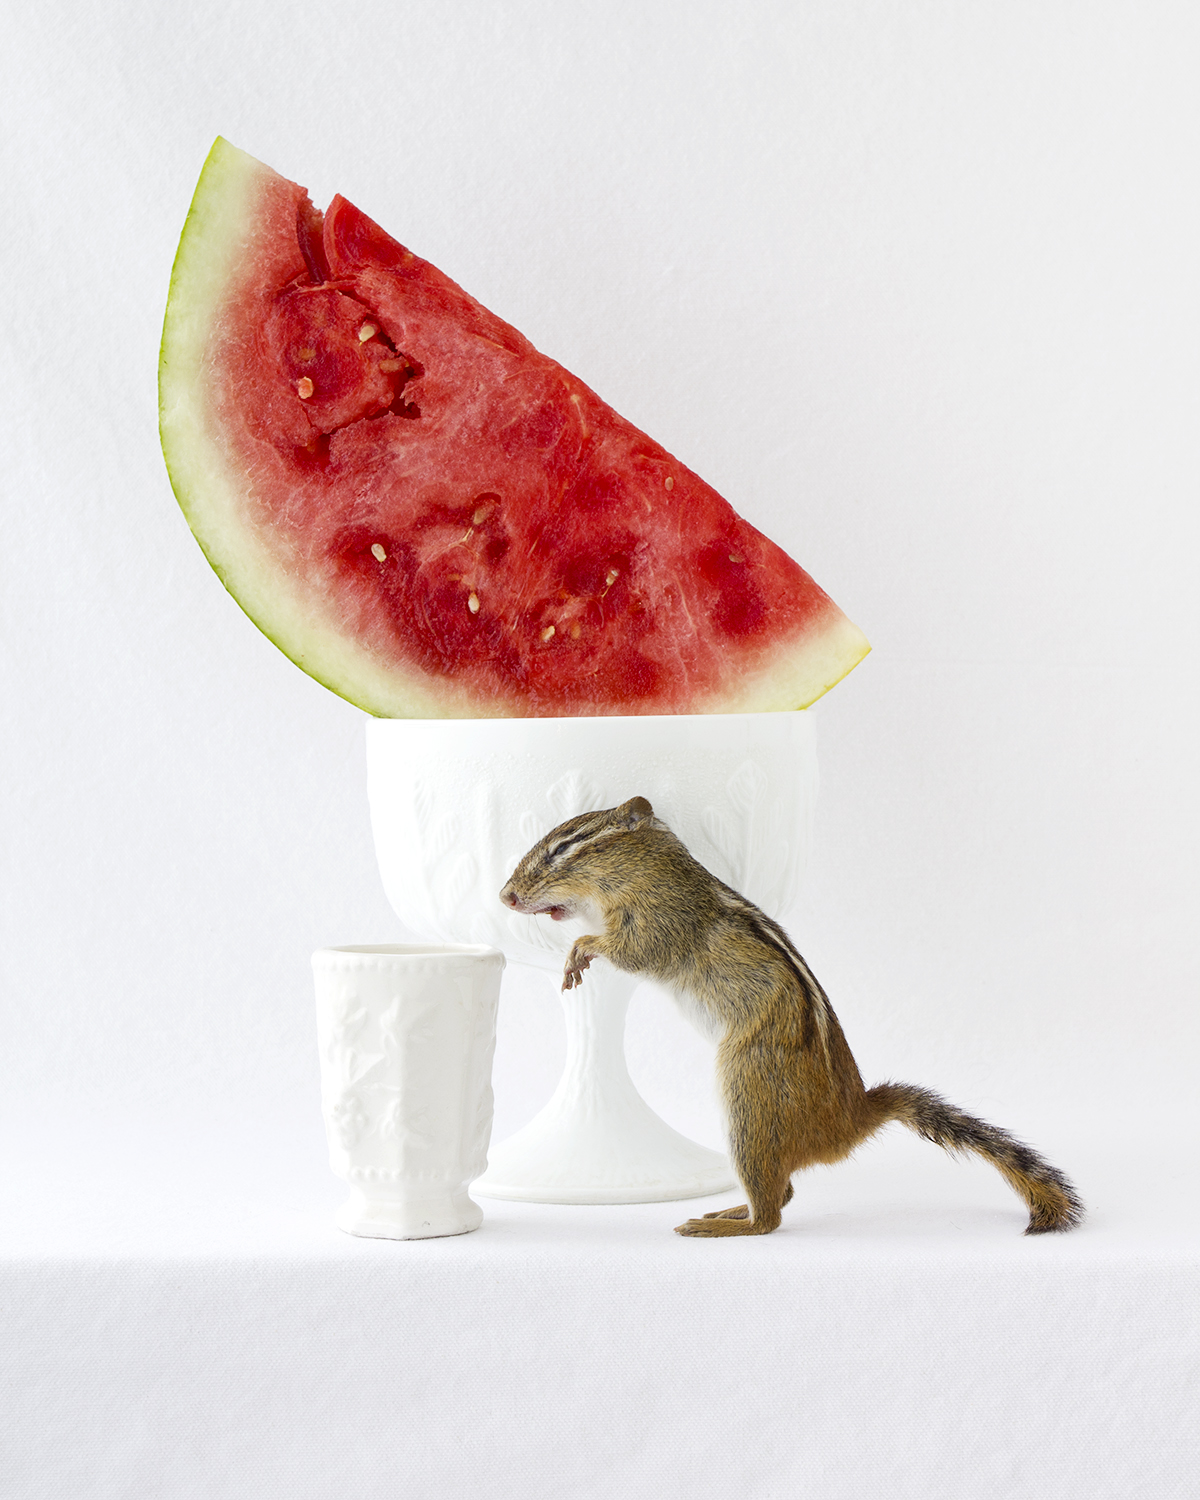 Witham_WatermelonChipmunk.jpg